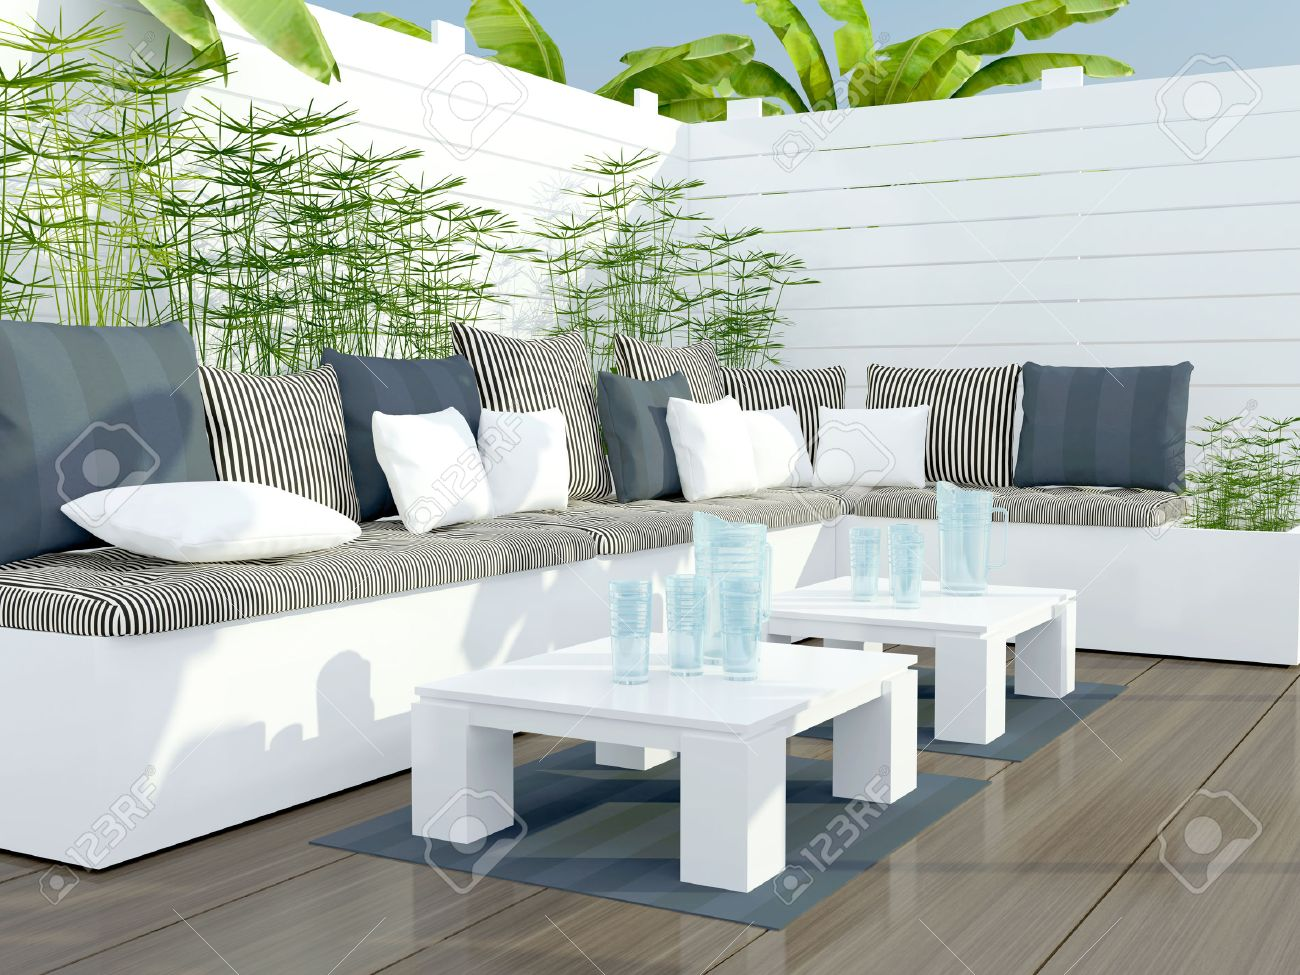 outdoor patio seating area with big white sofa and table